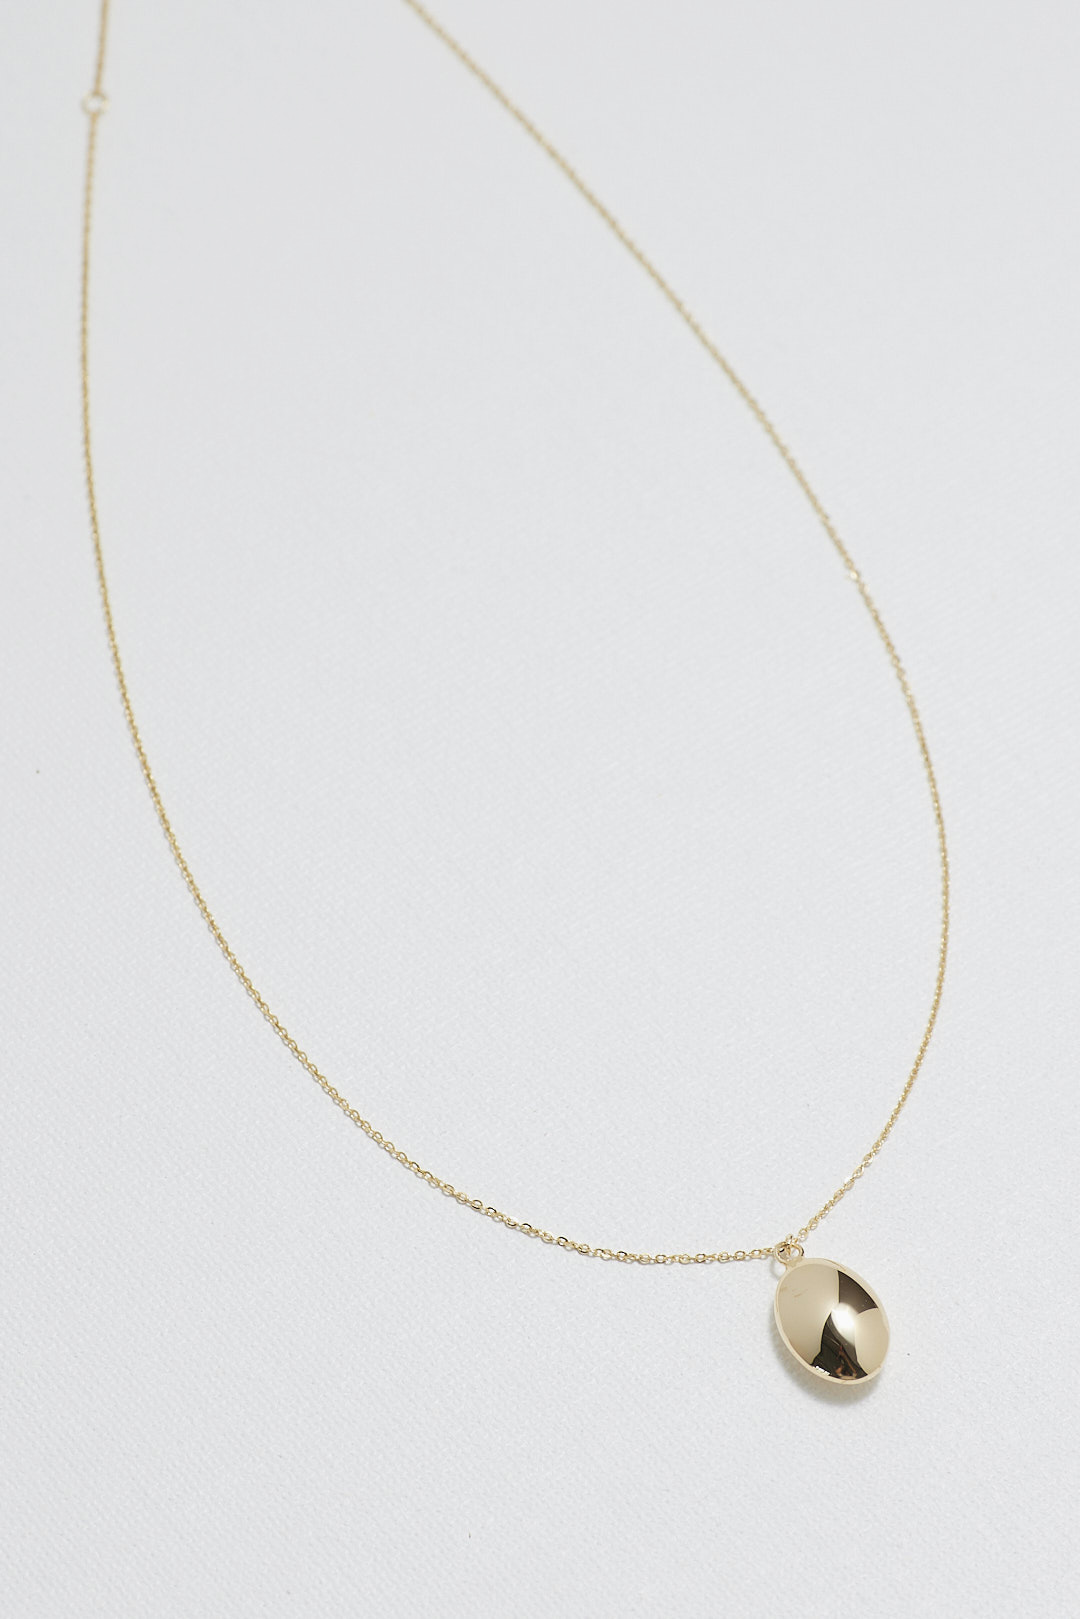 Prisca Necklace